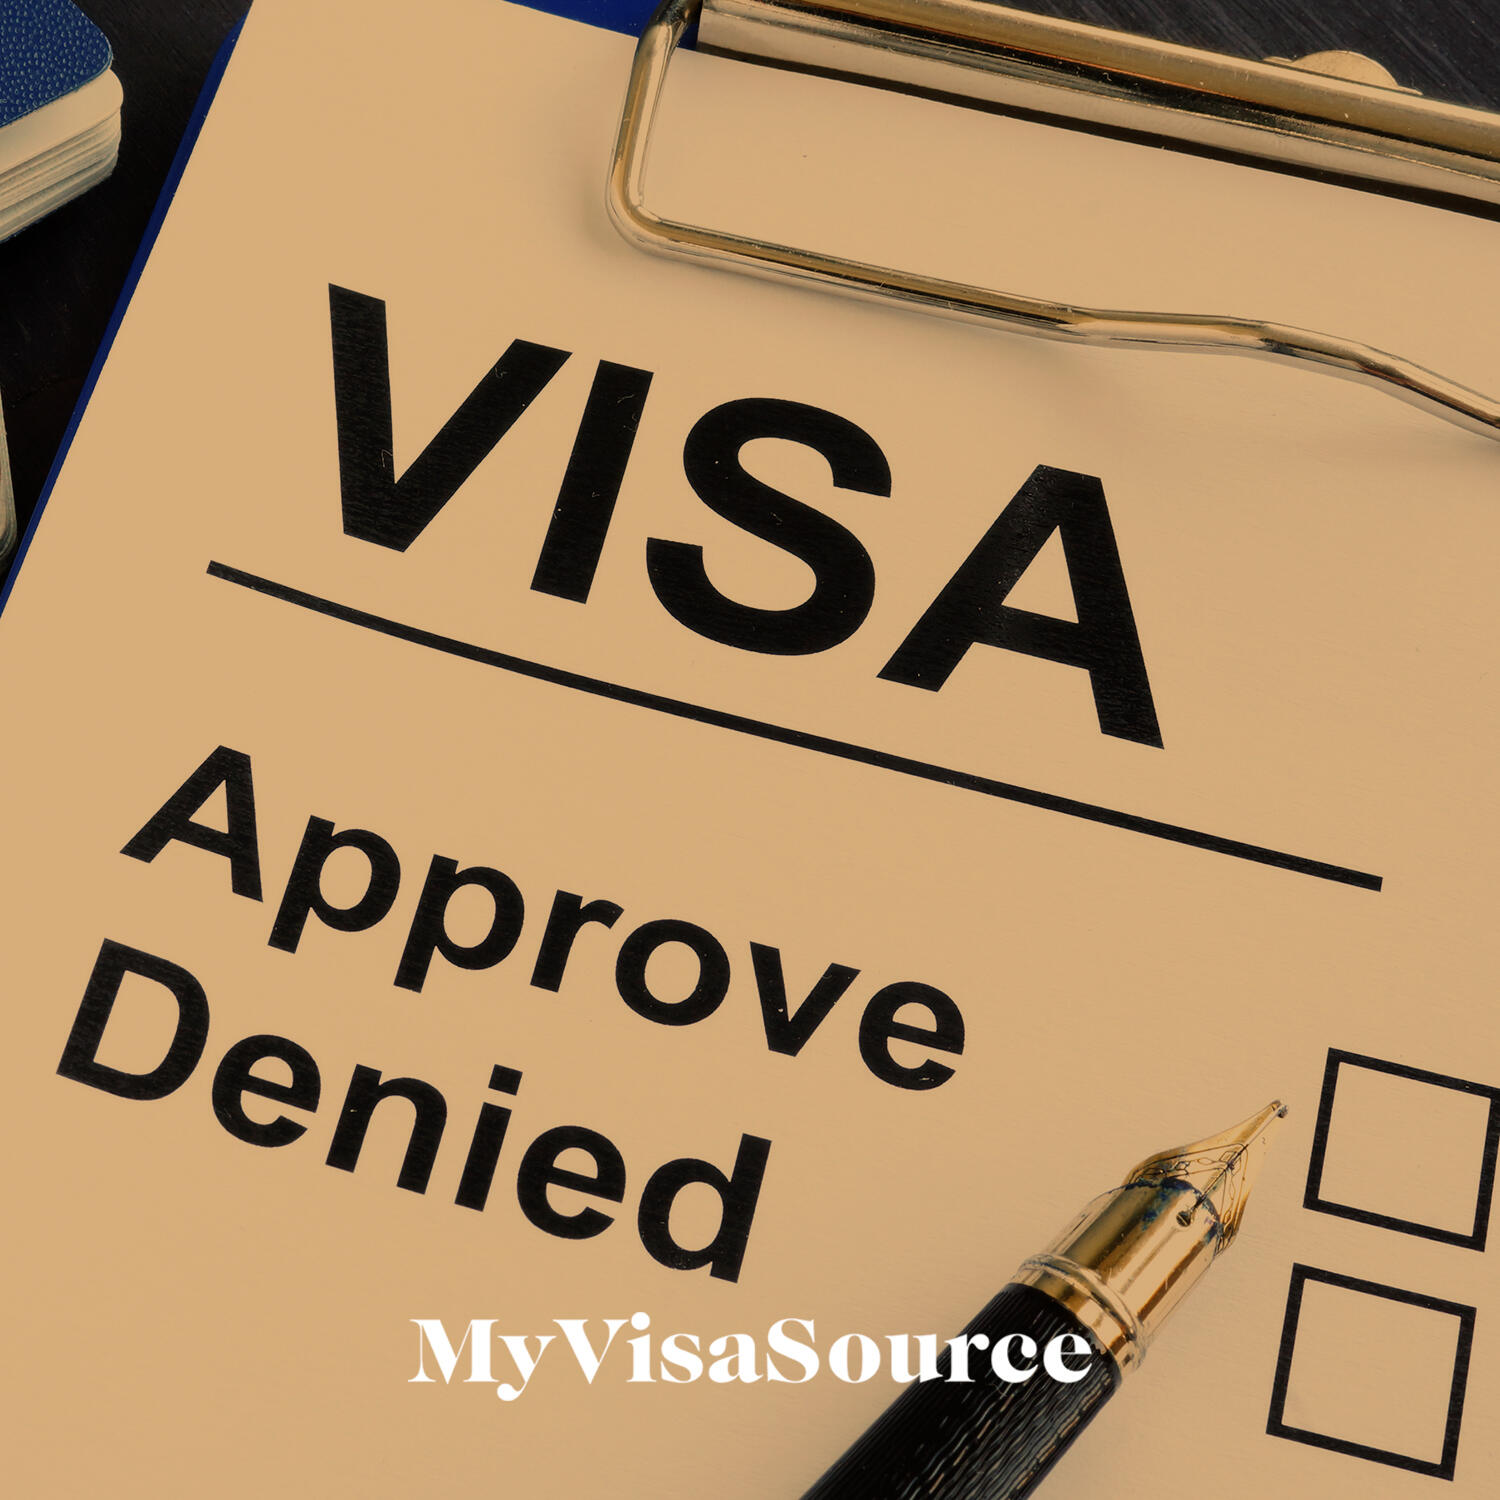 visa document with unchecked approve and denied boxes